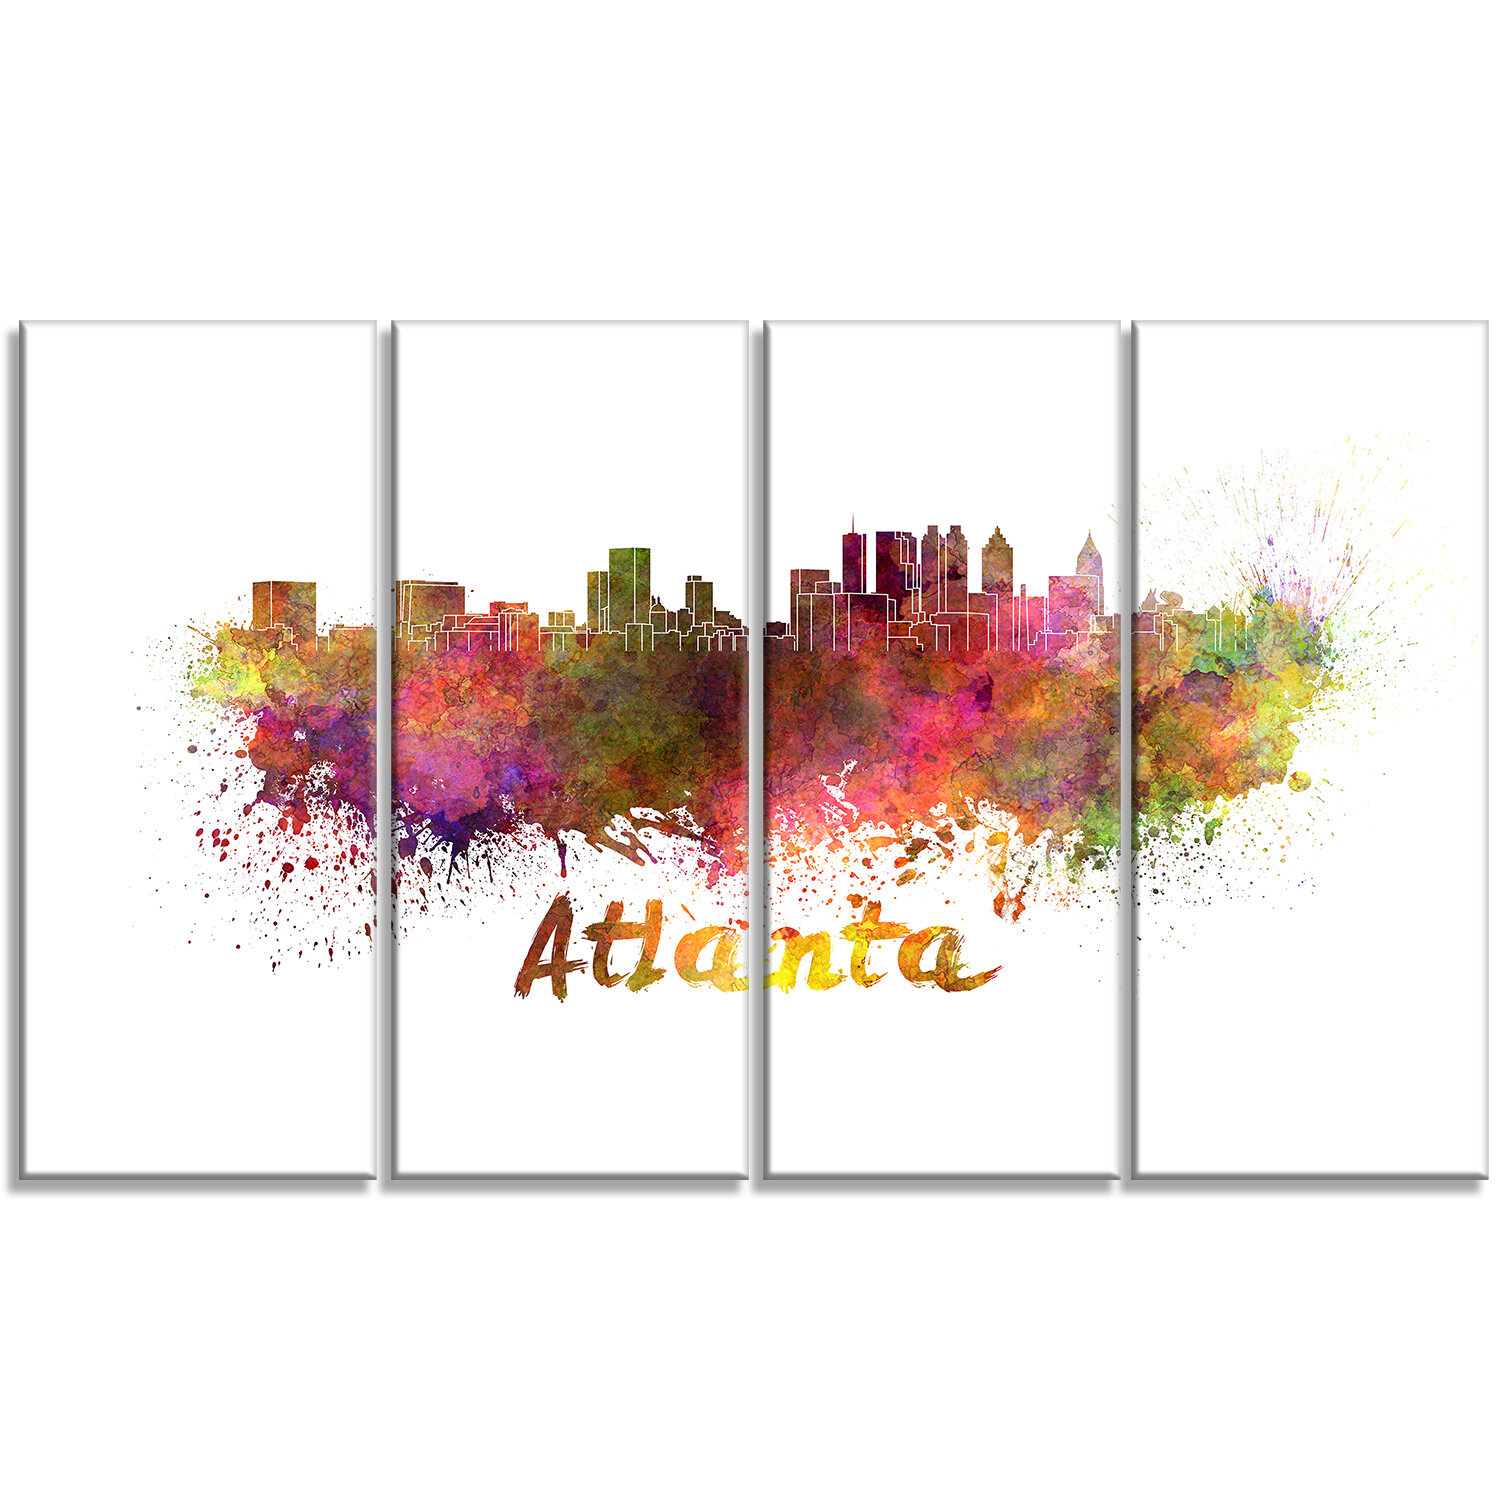 Designart Atlanta Skyline Cityscape 4 Piece Painting Print On Wrapped Canvas Set Wayfair